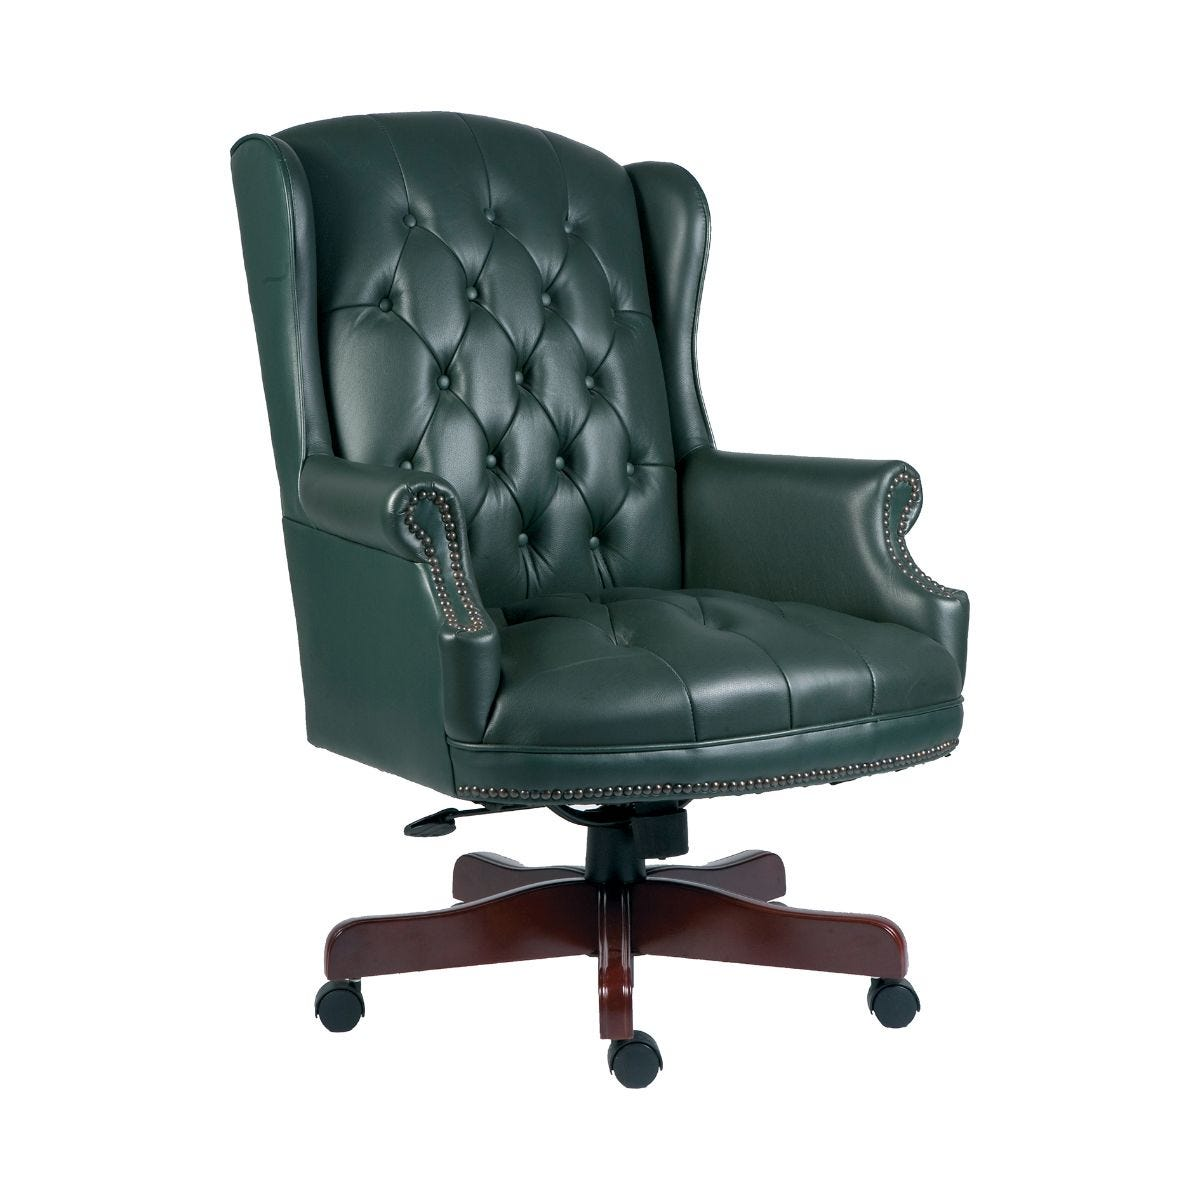 Chairman Swivel Executive Office Chair, Green